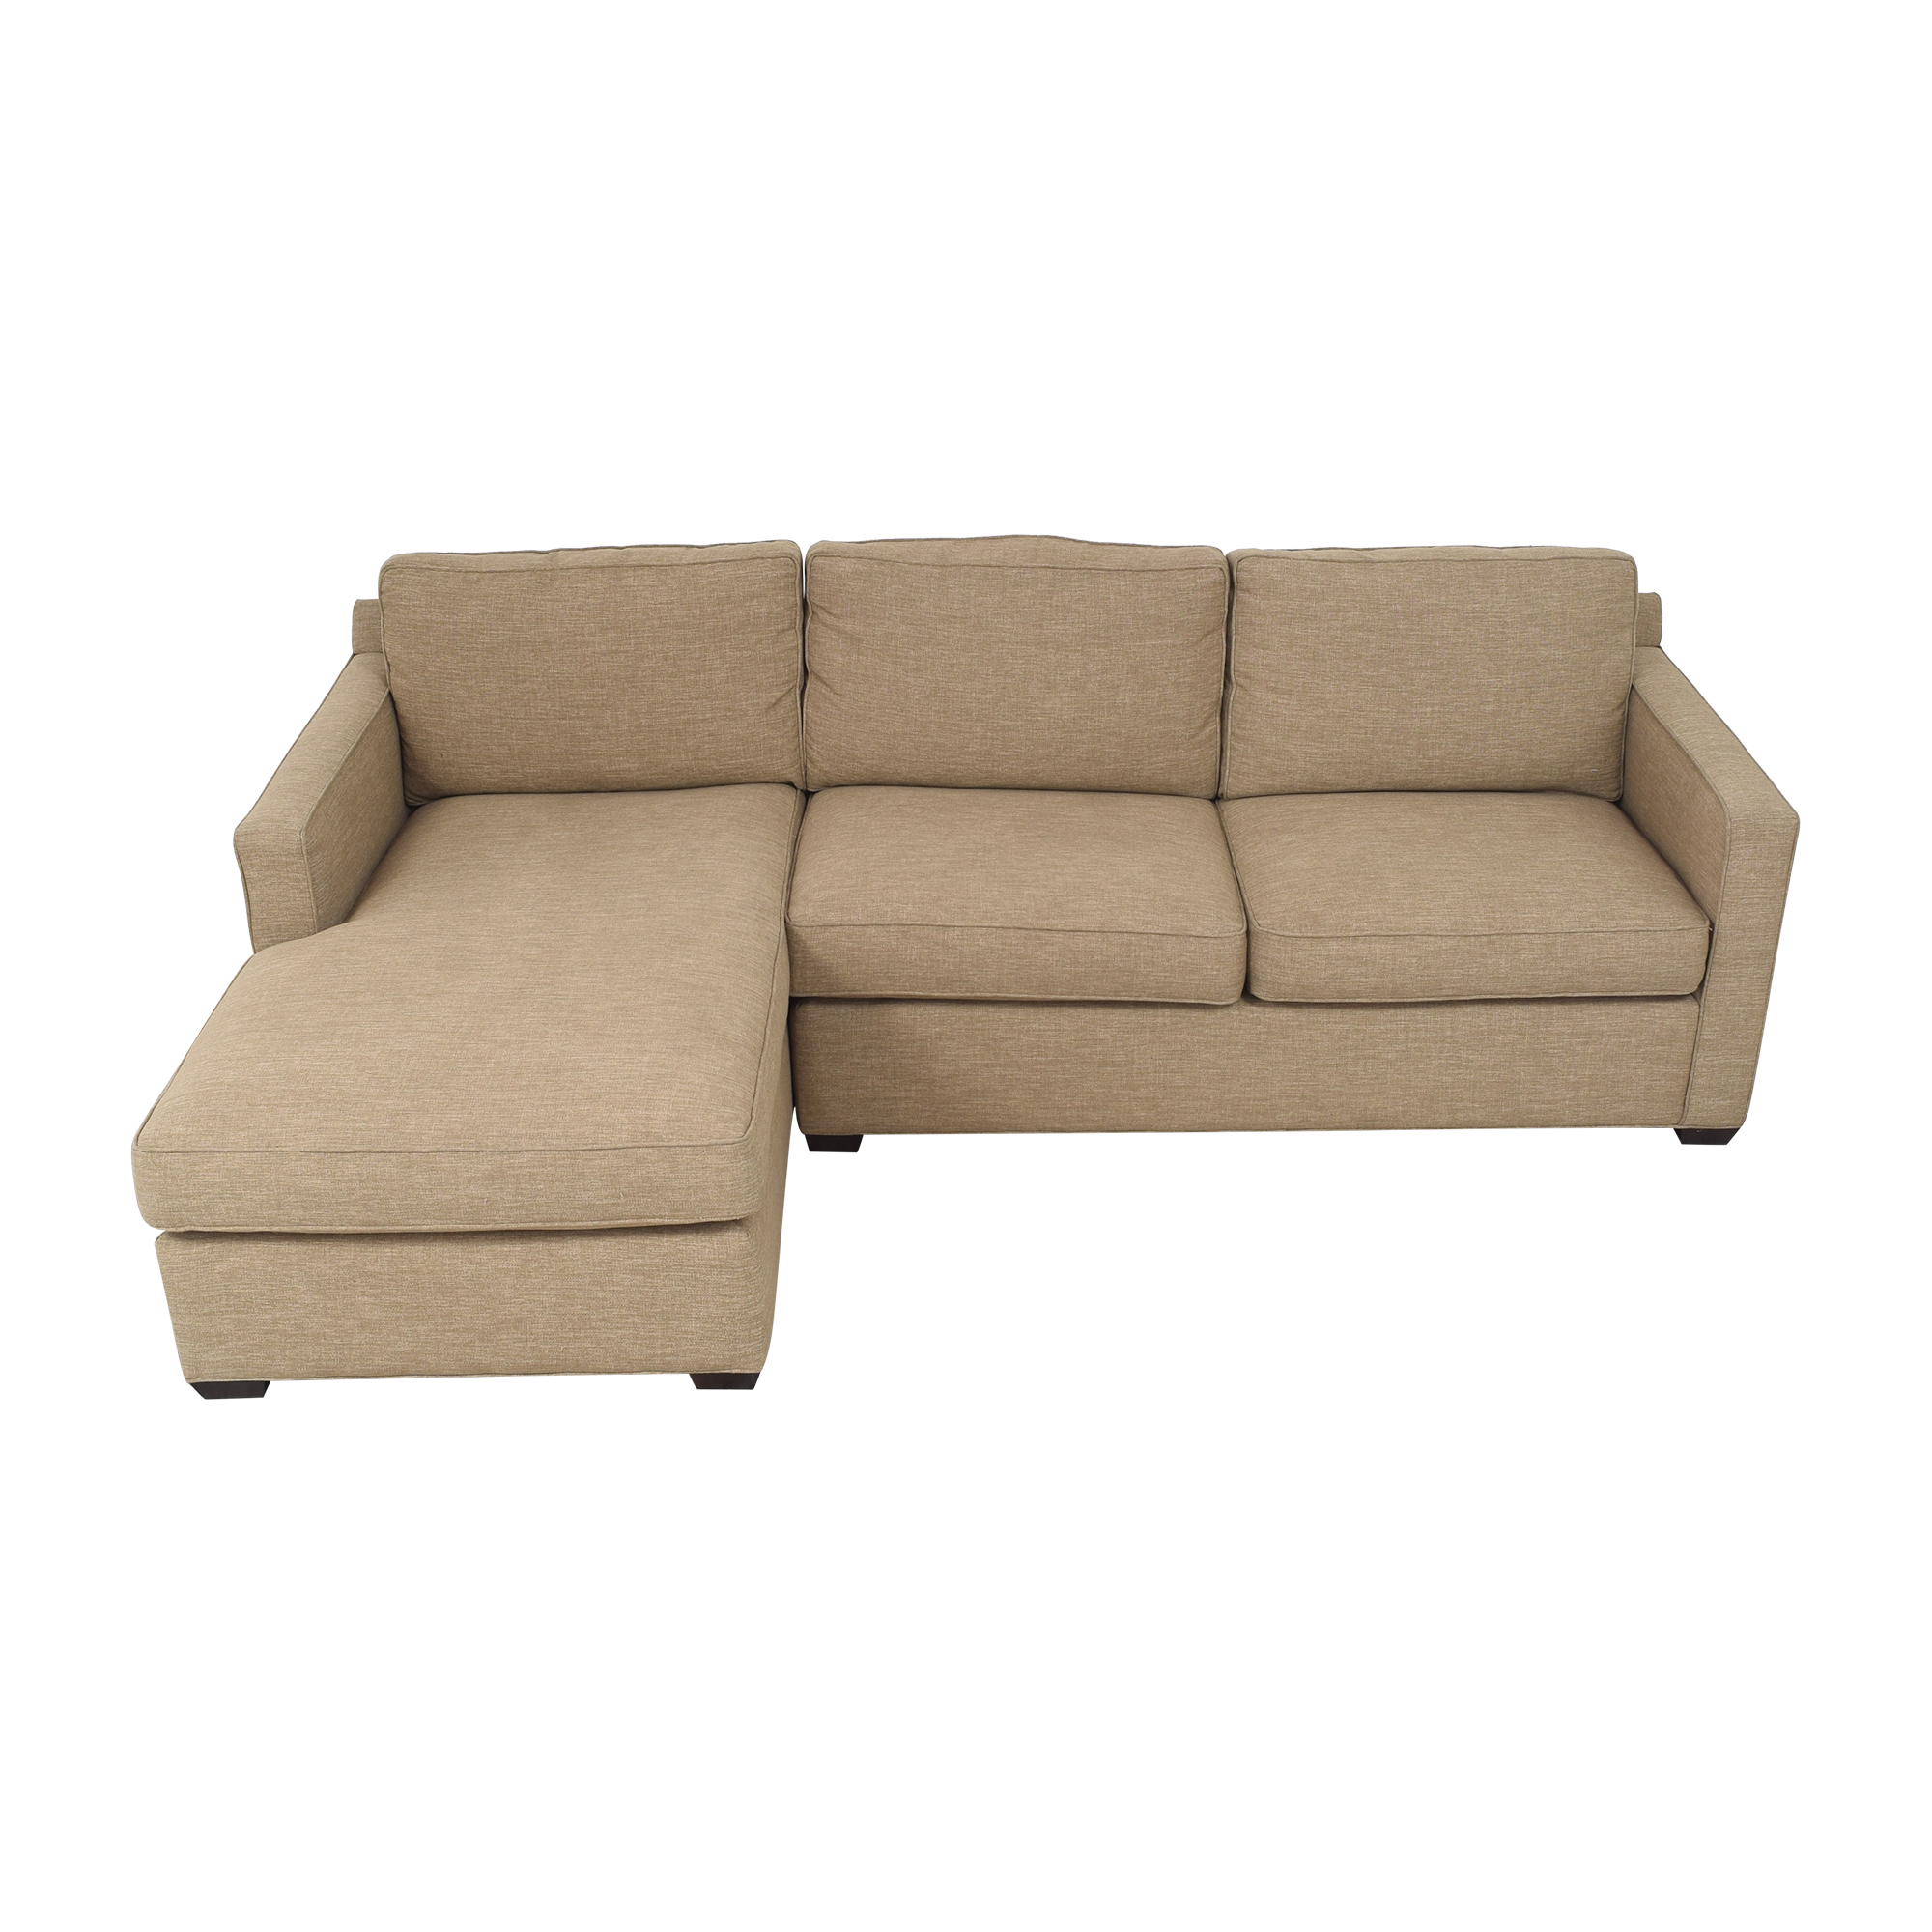 shop Crate & Barrel Crate & Barrel Sectional Sofa with Chaise online